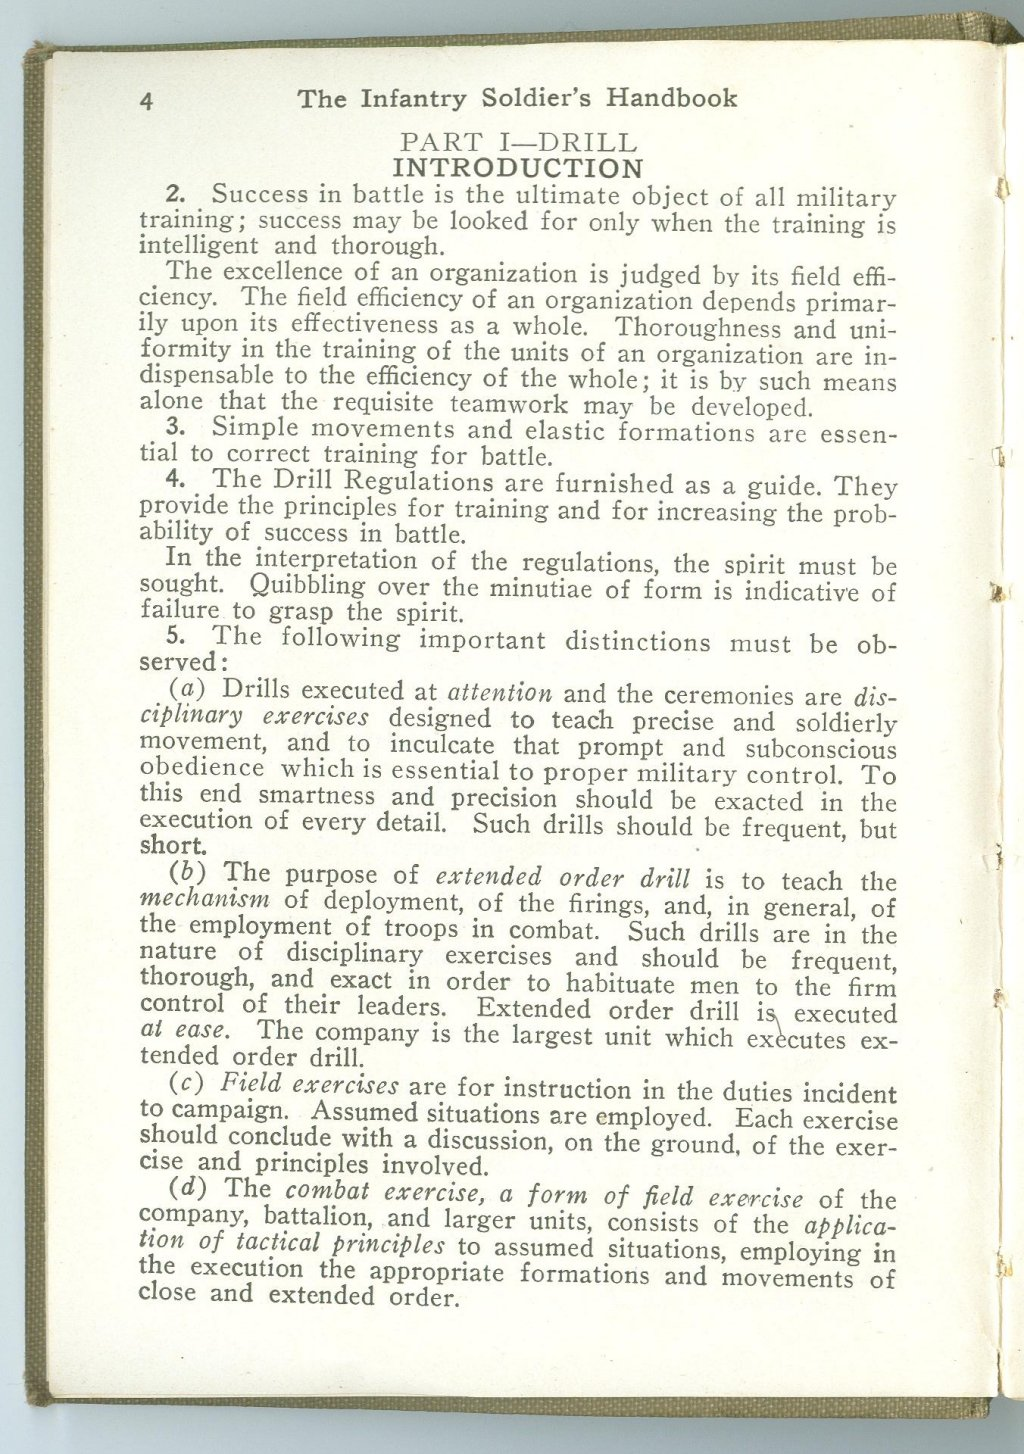 314th Infantry Regiment - Infantry Soldiers Handbook - Waldron - Page 004